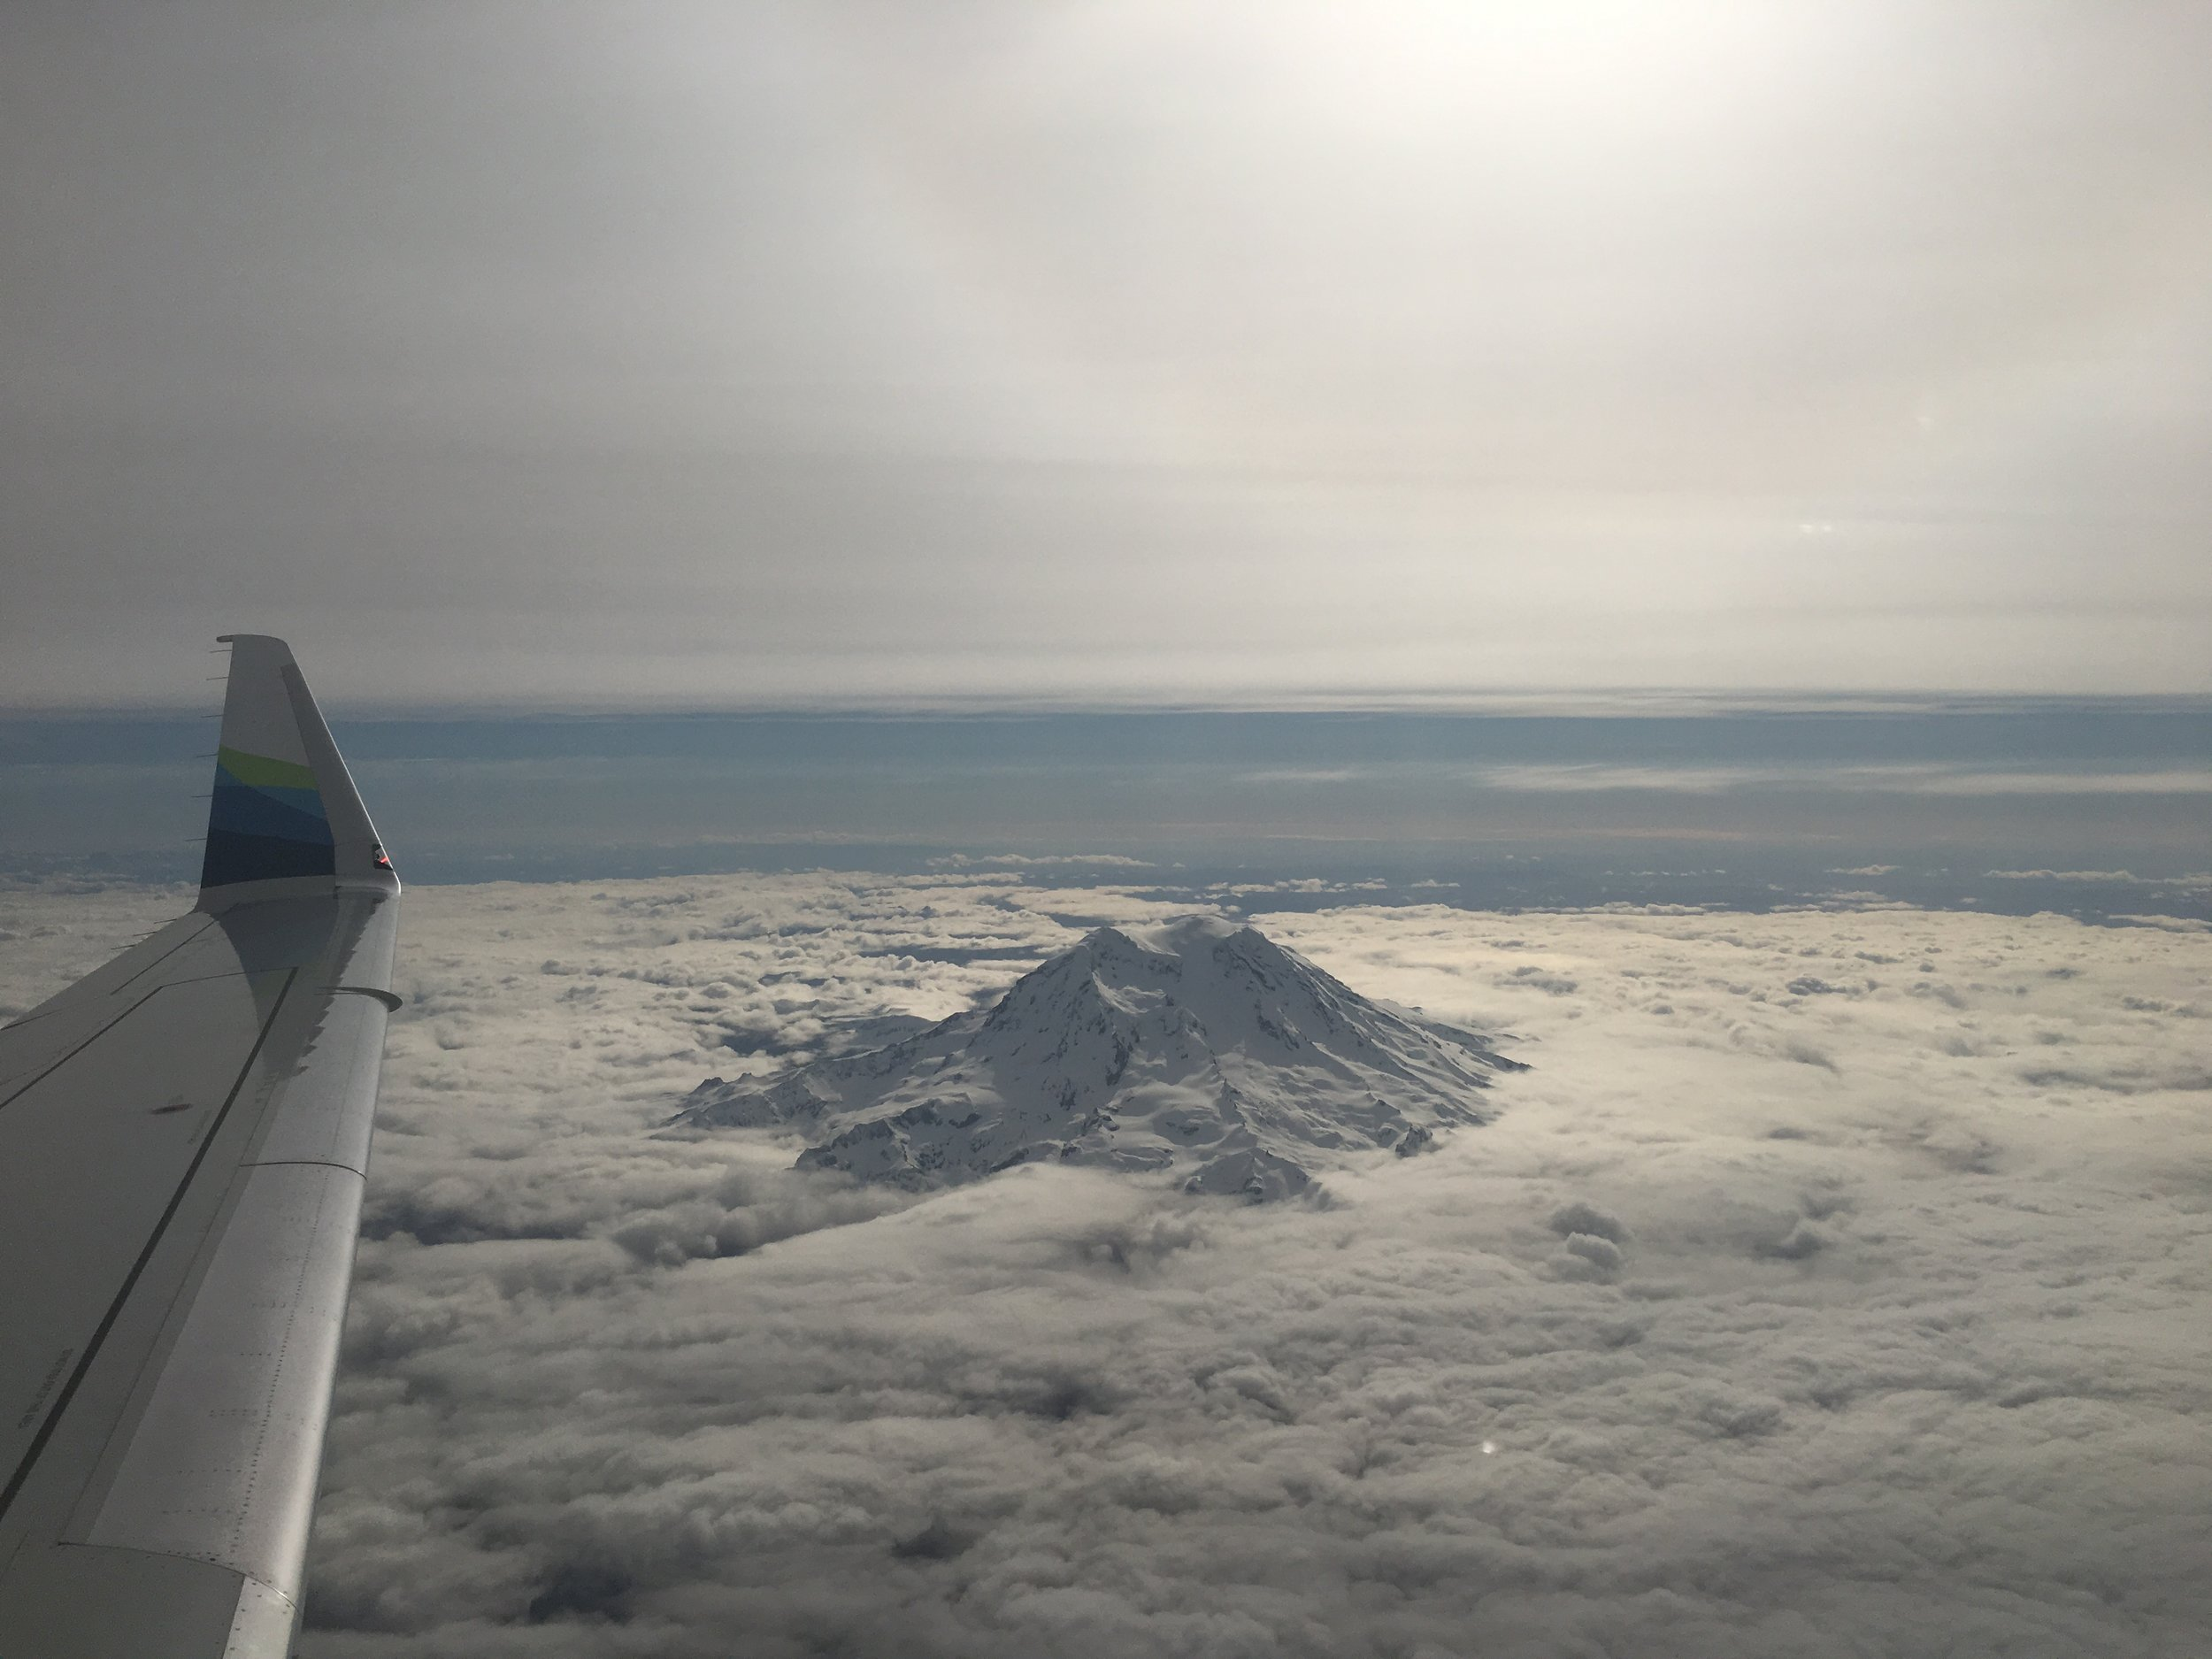 Love when Mt. Rainier is surrounded by clouds while flying above!